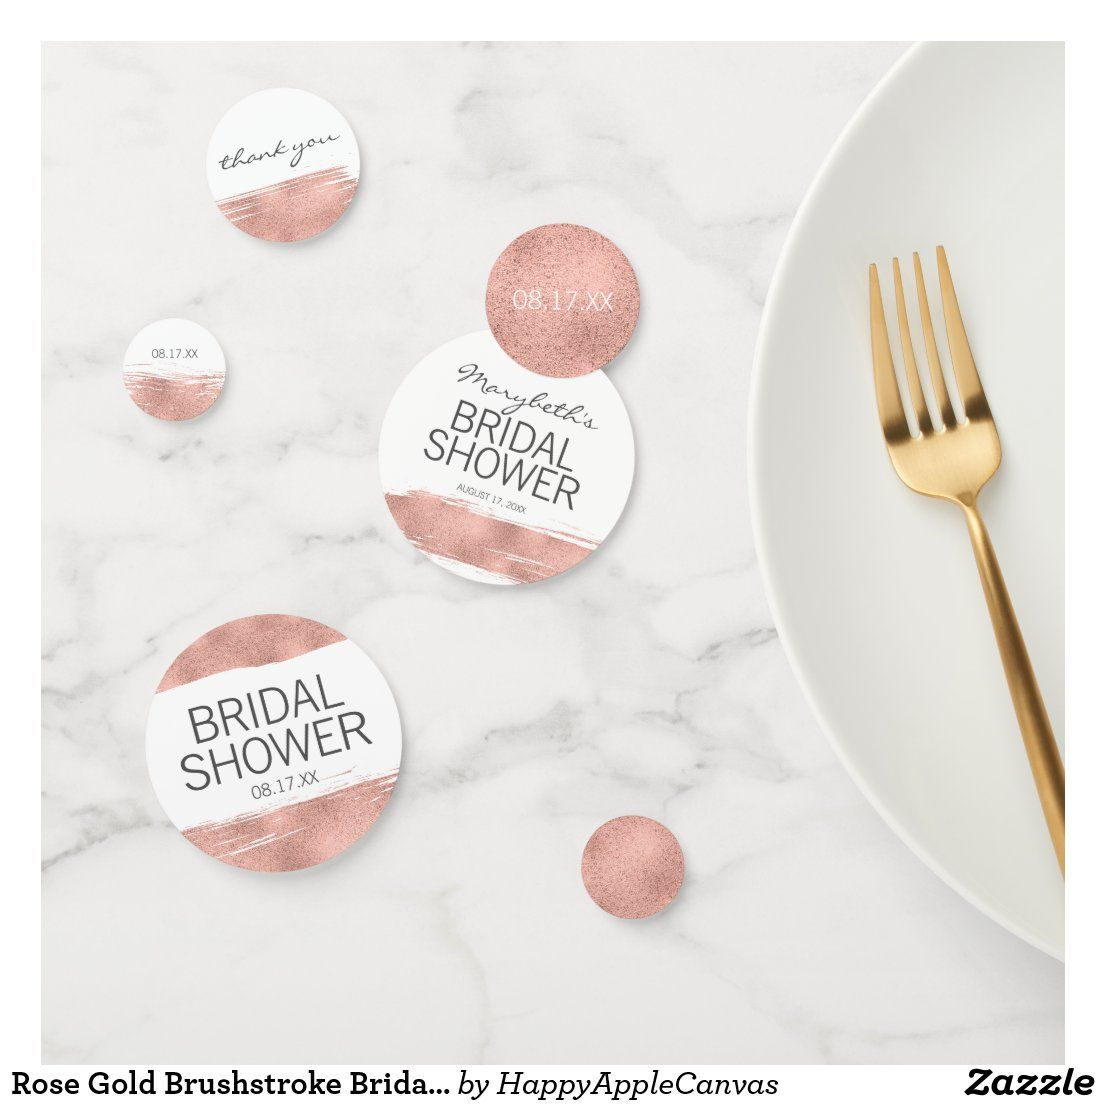 Rose Gold Brushstroke Bridal Shower Table Confetti